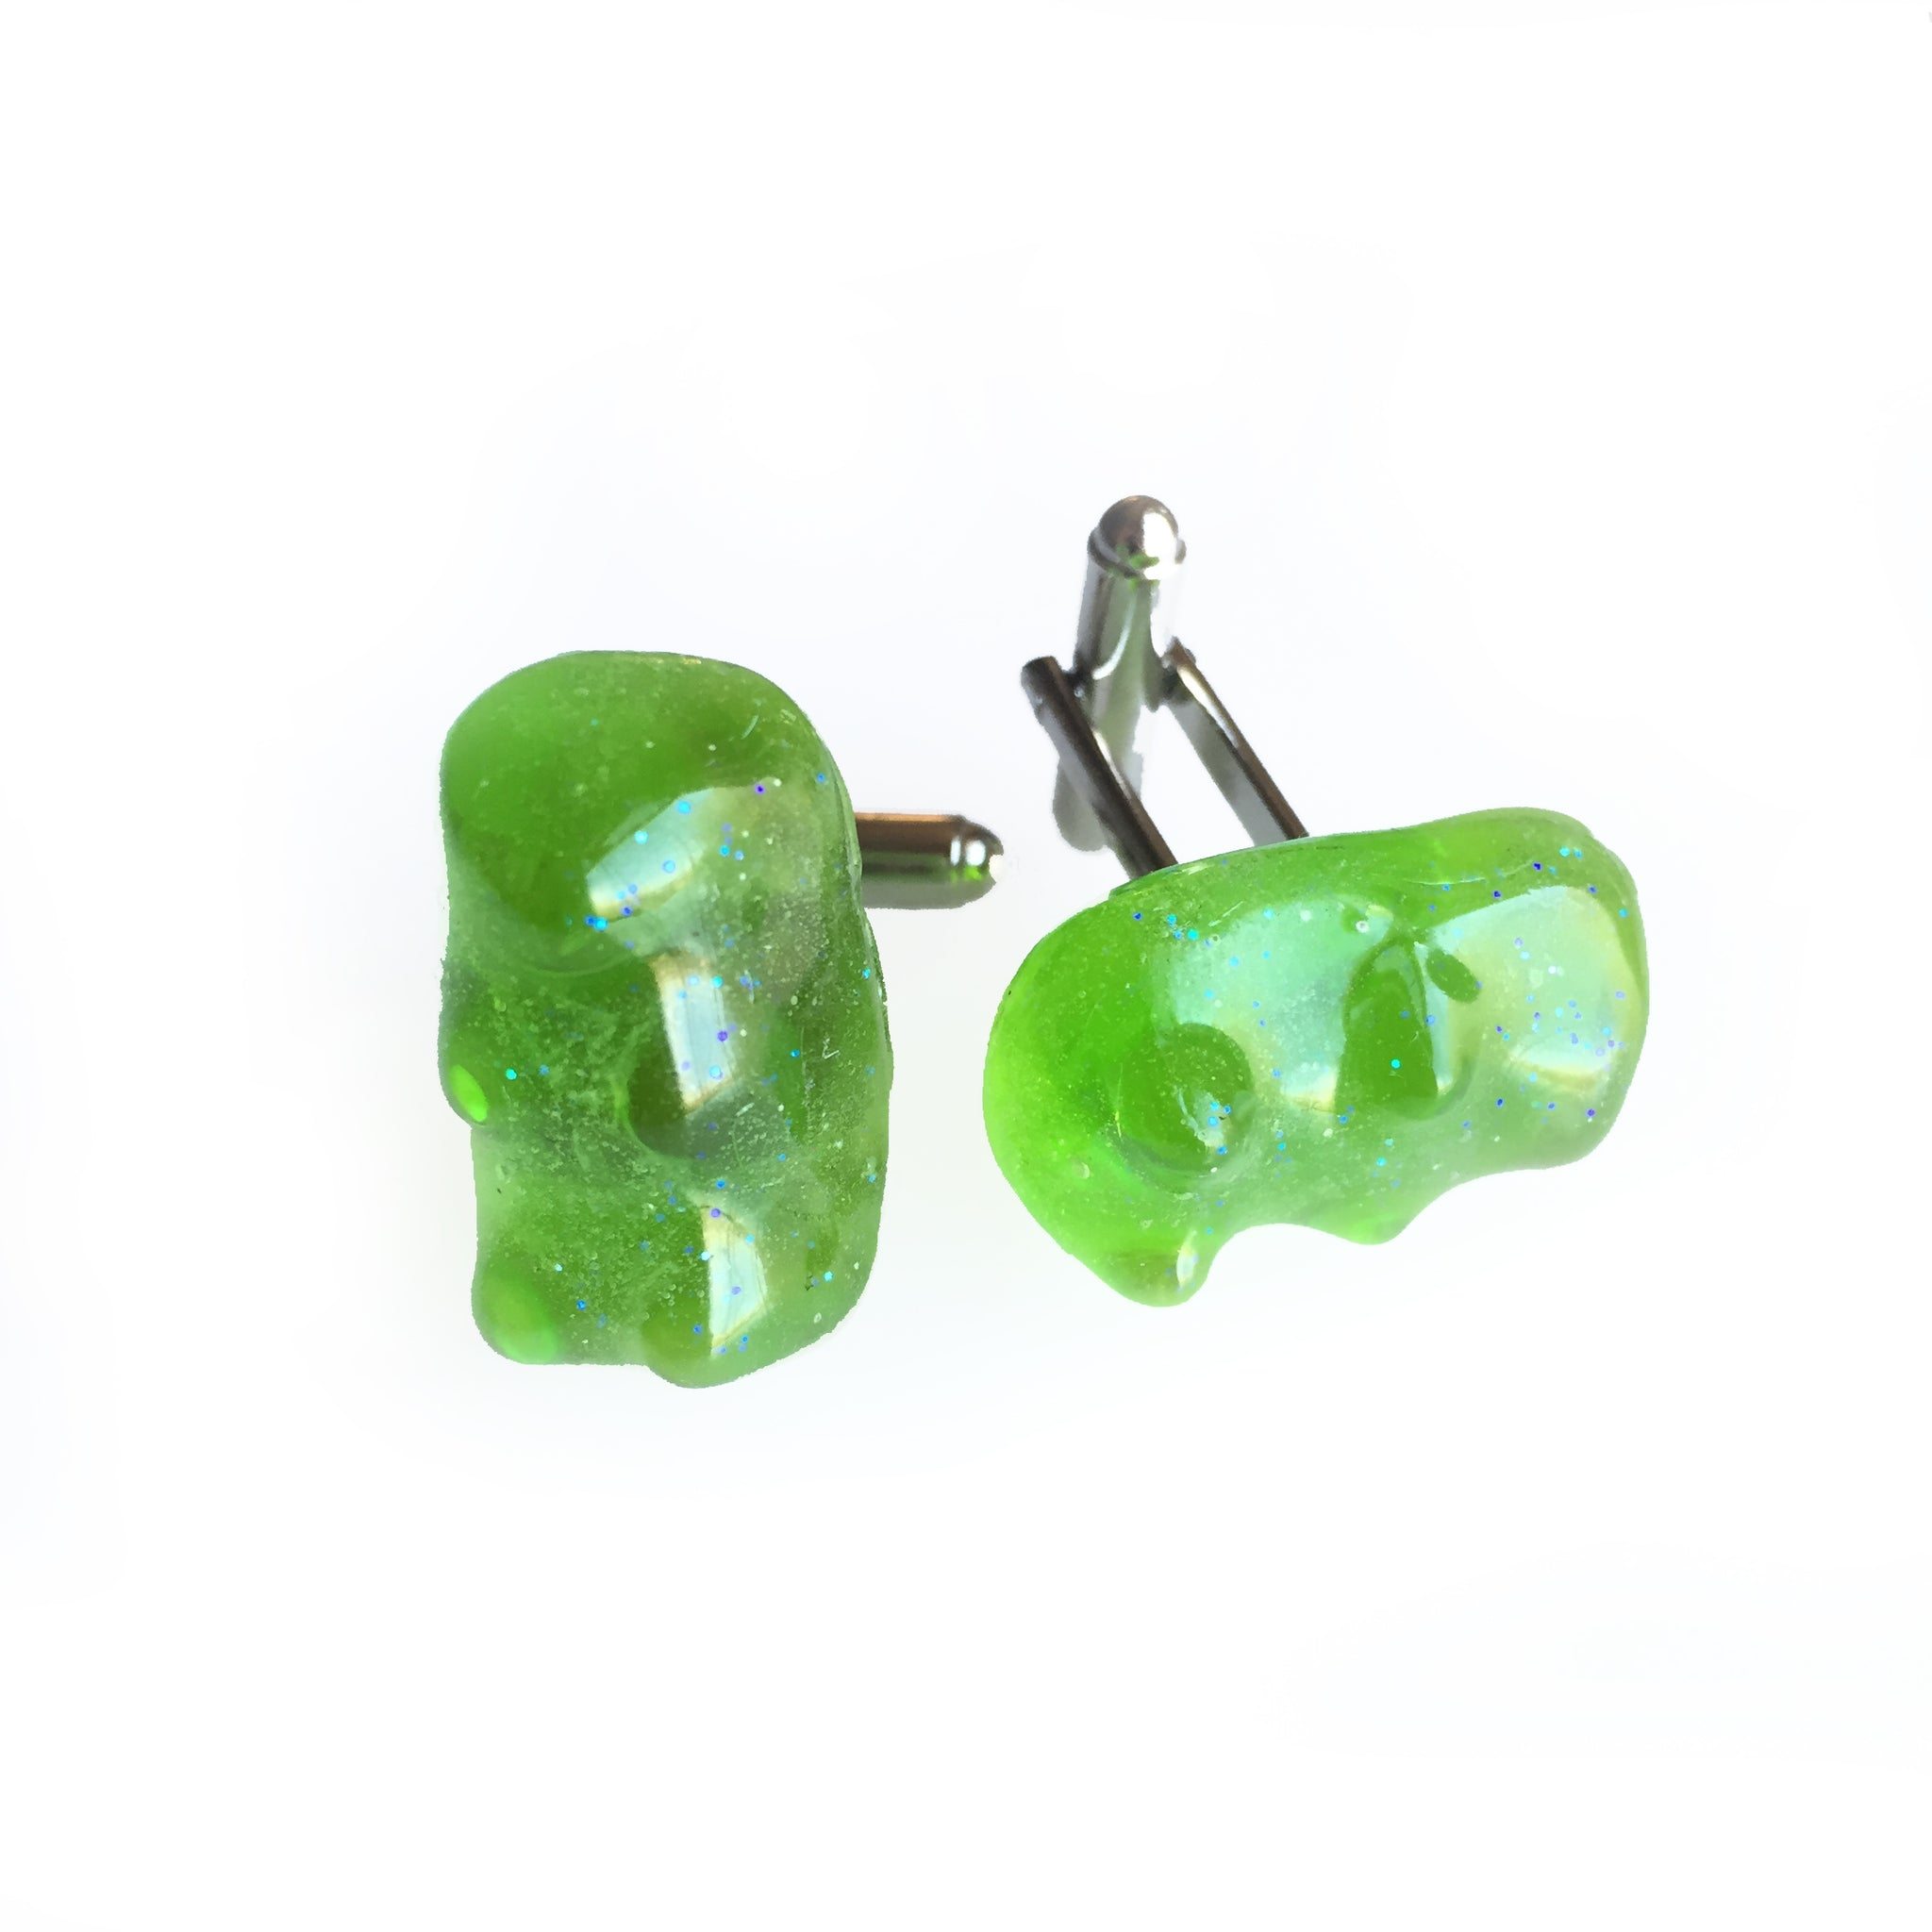 Gummy Bear Cufflinks